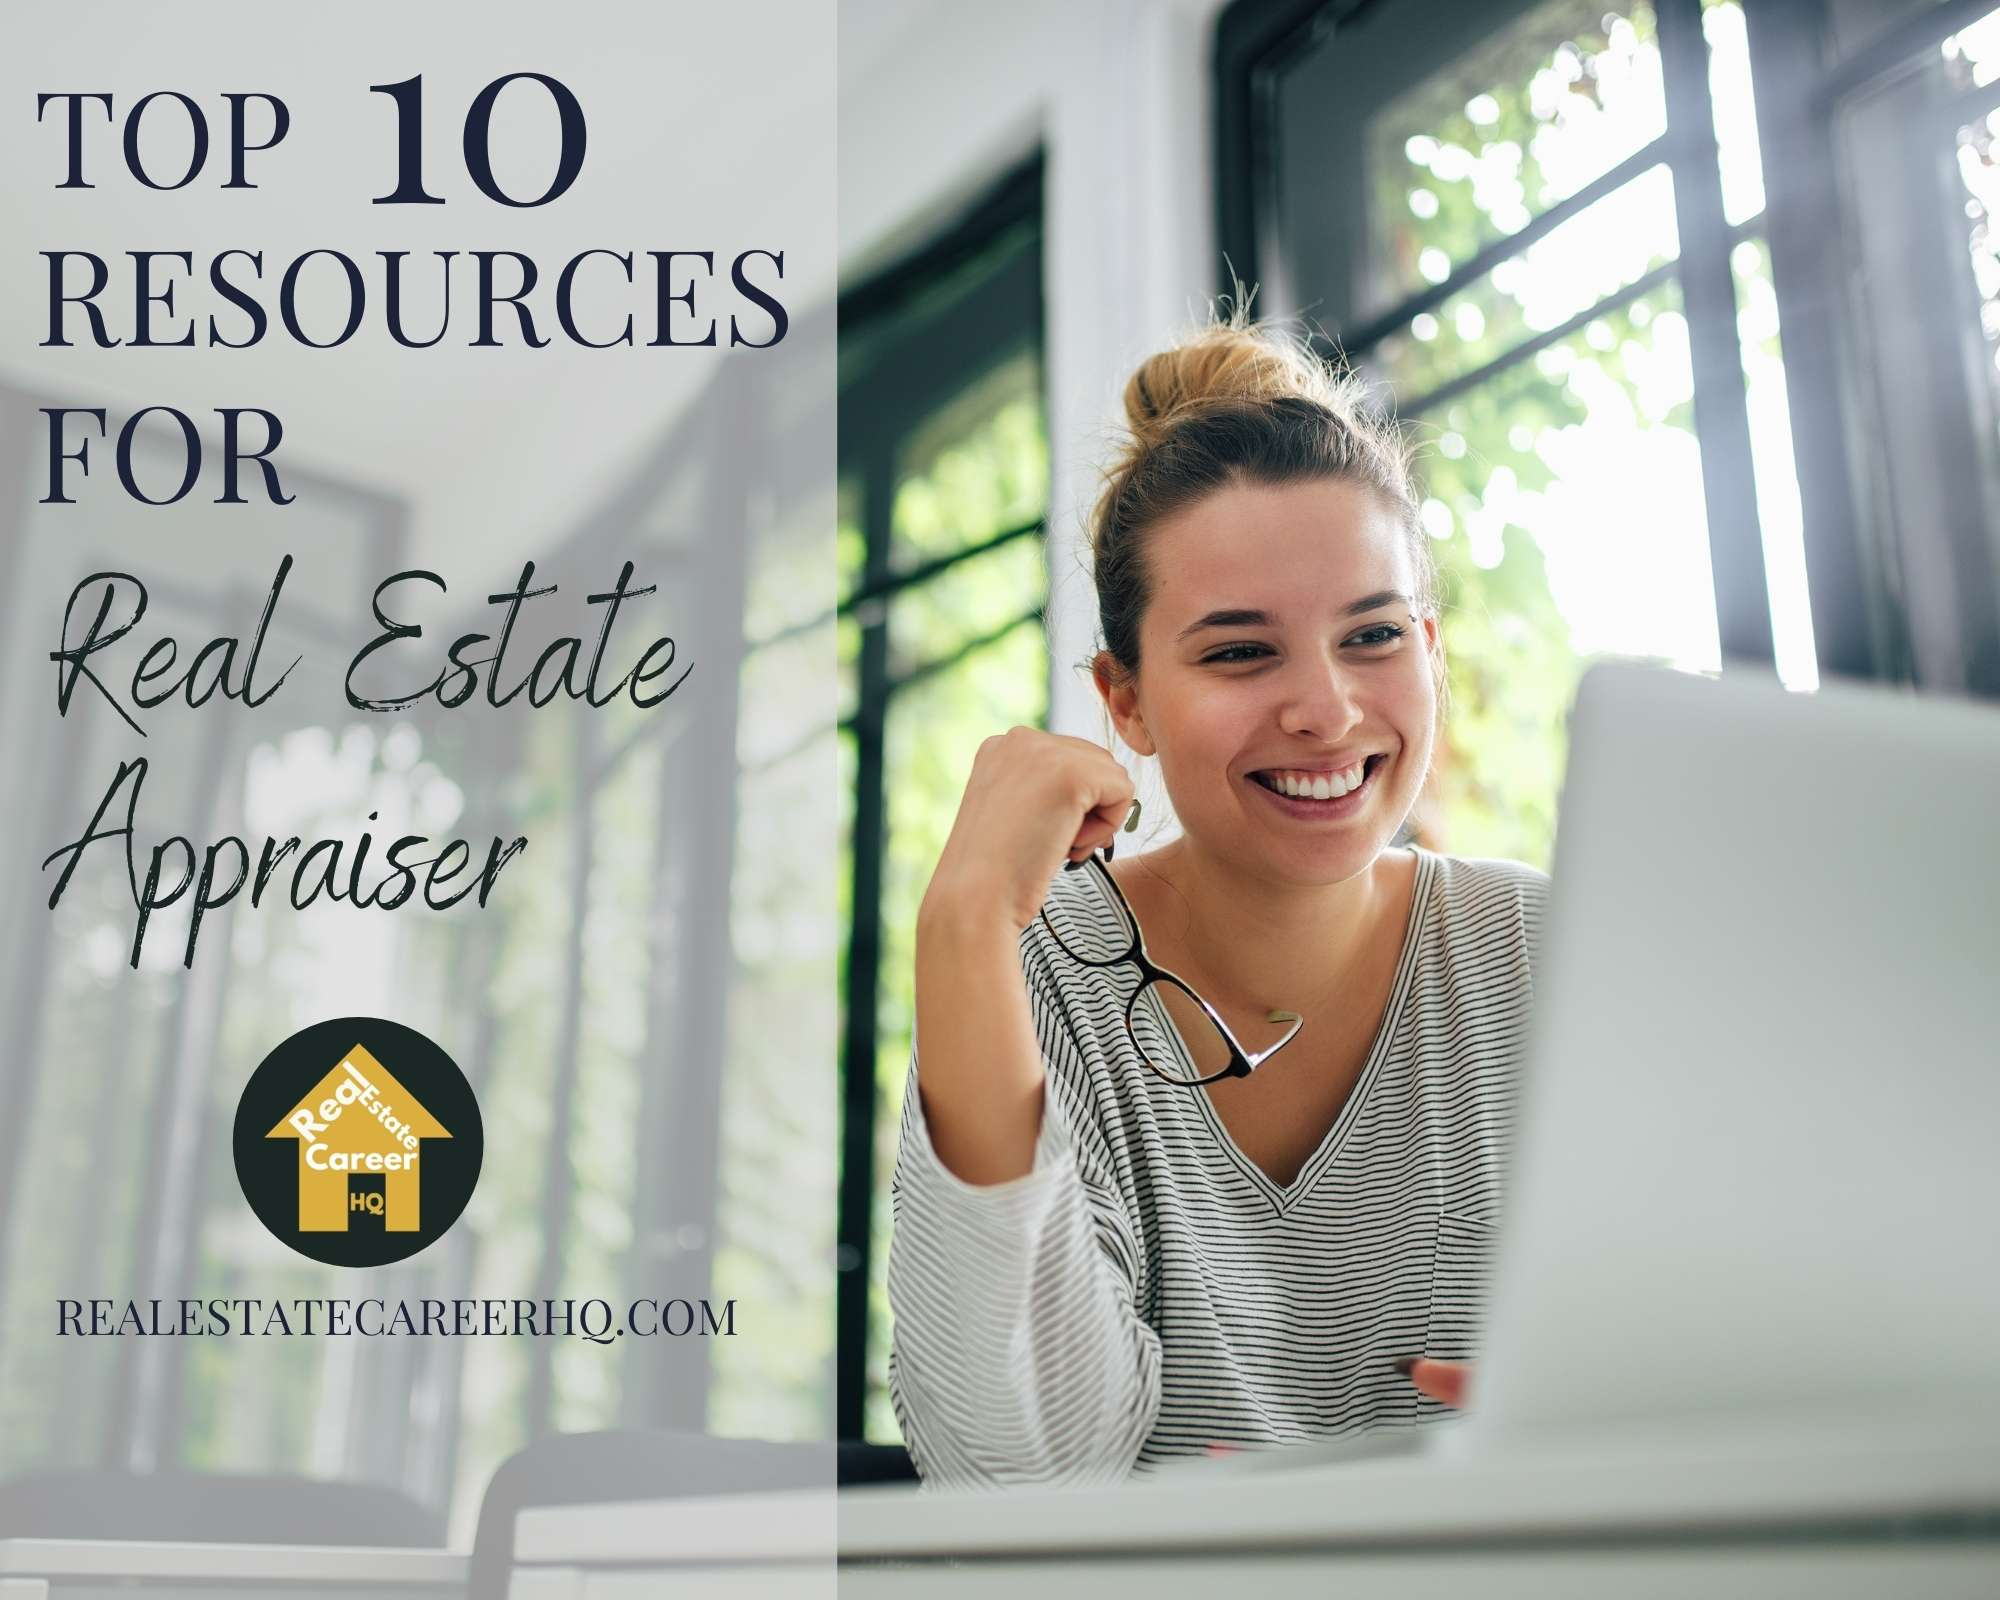 Top 10 Resources for Real Estate Appraiser